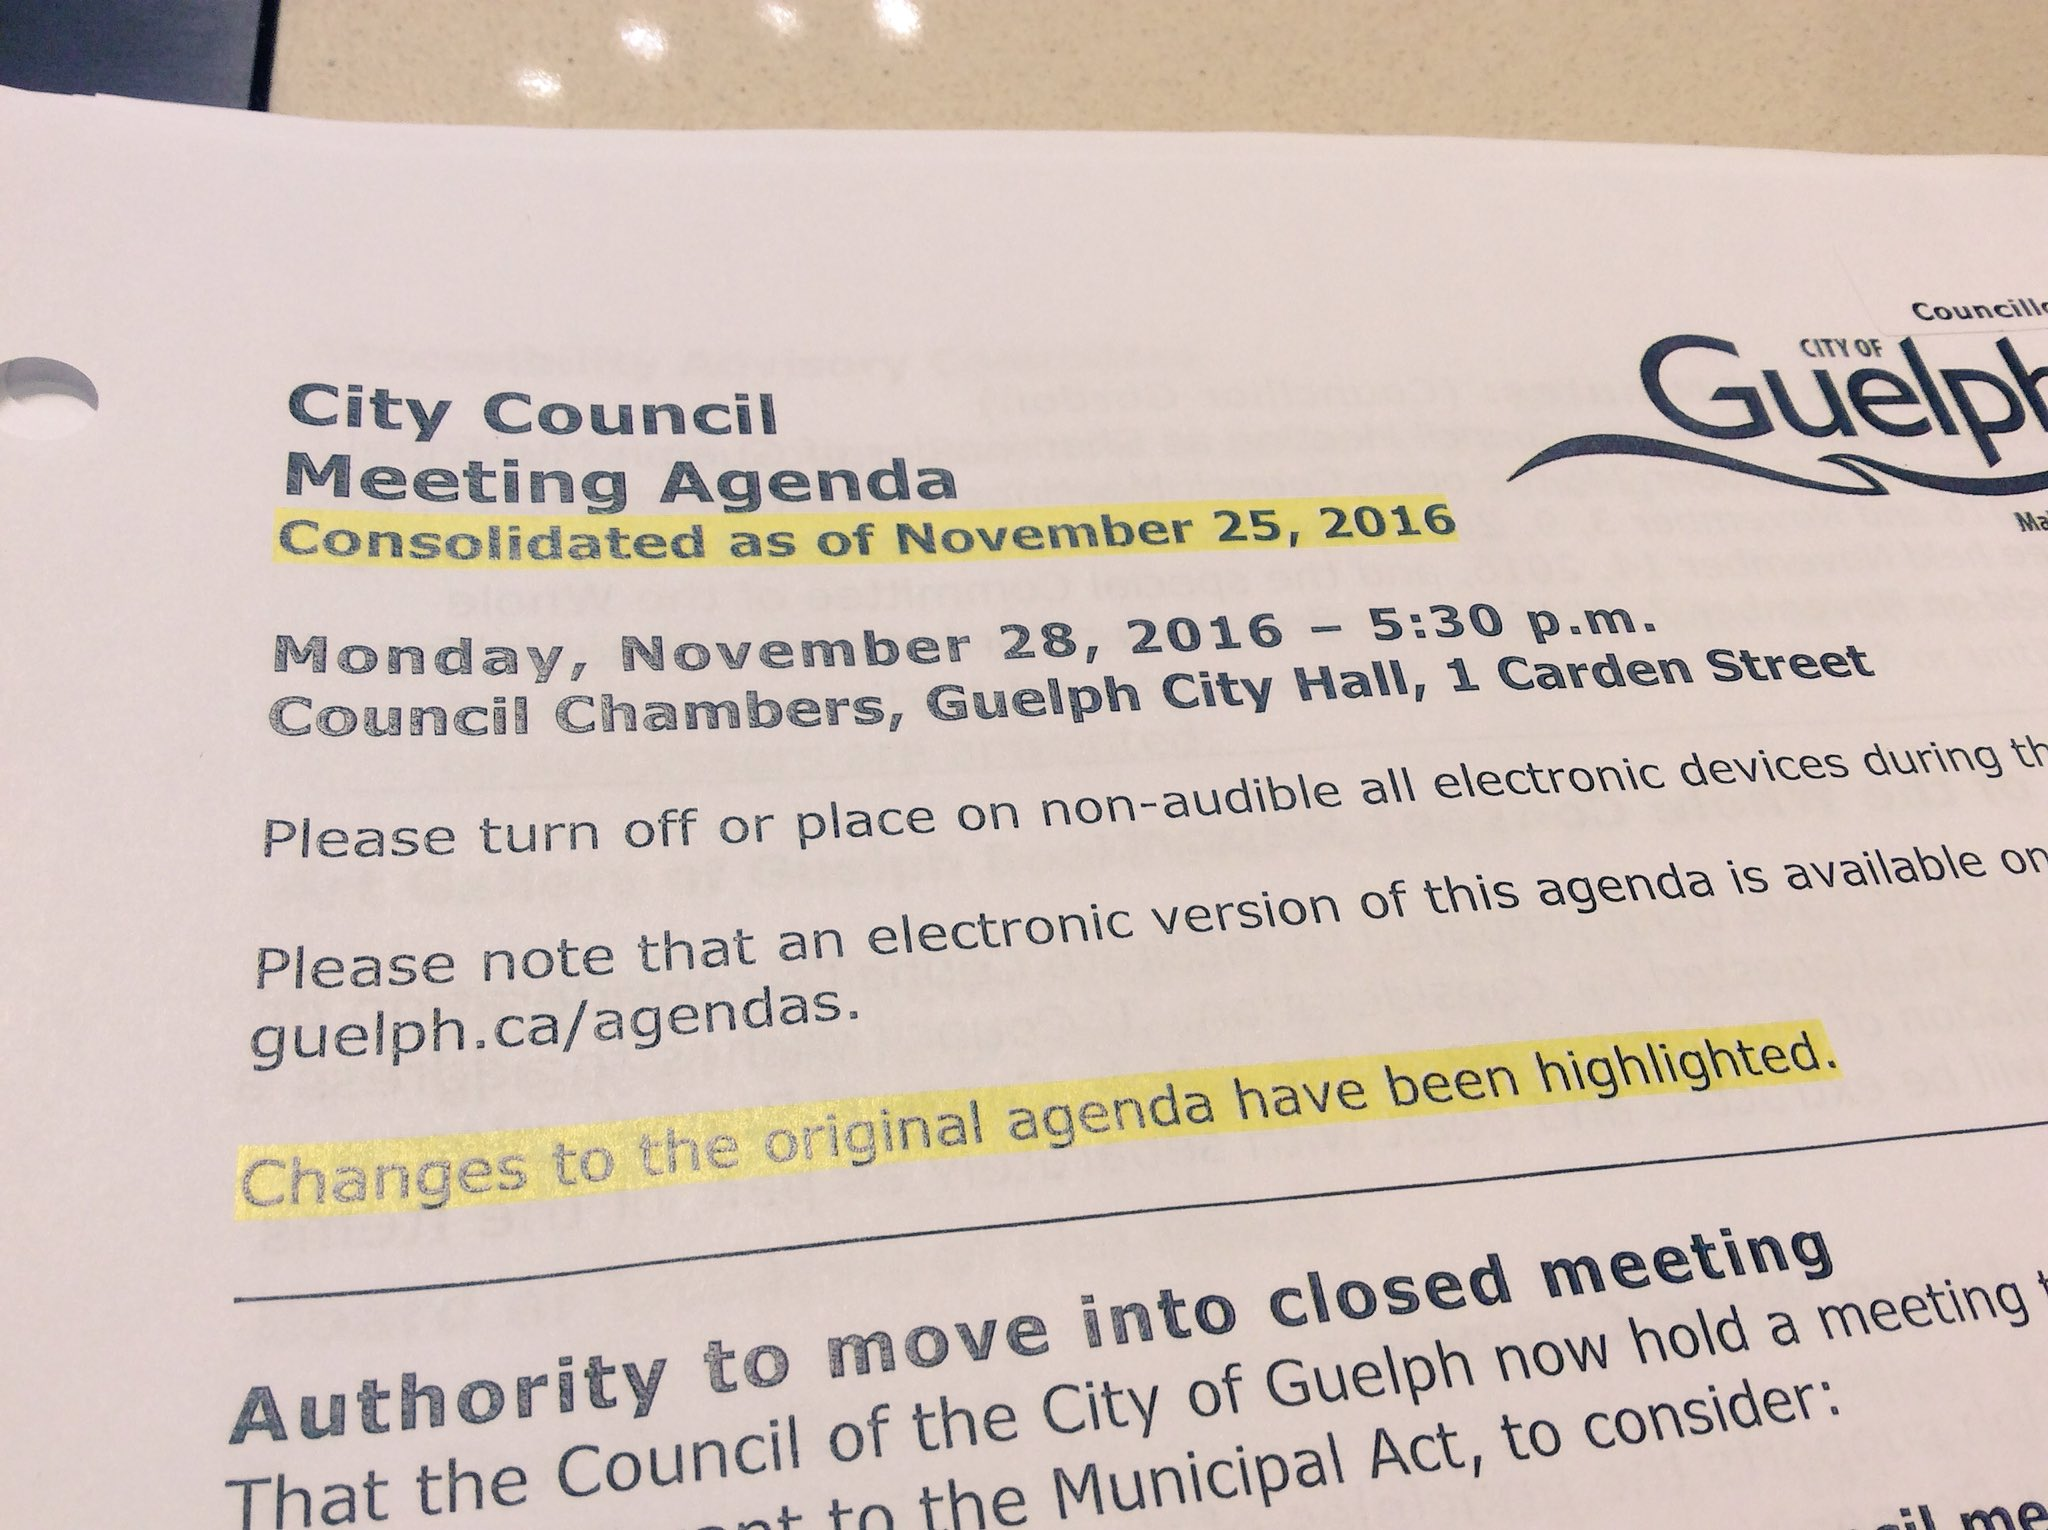 Going to be a long night tonight at #Guelph council with 45+ delegations on 75 Dublin and Guelph's submission to Ont gov about water-taking! https://t.co/VA91S8BRVk